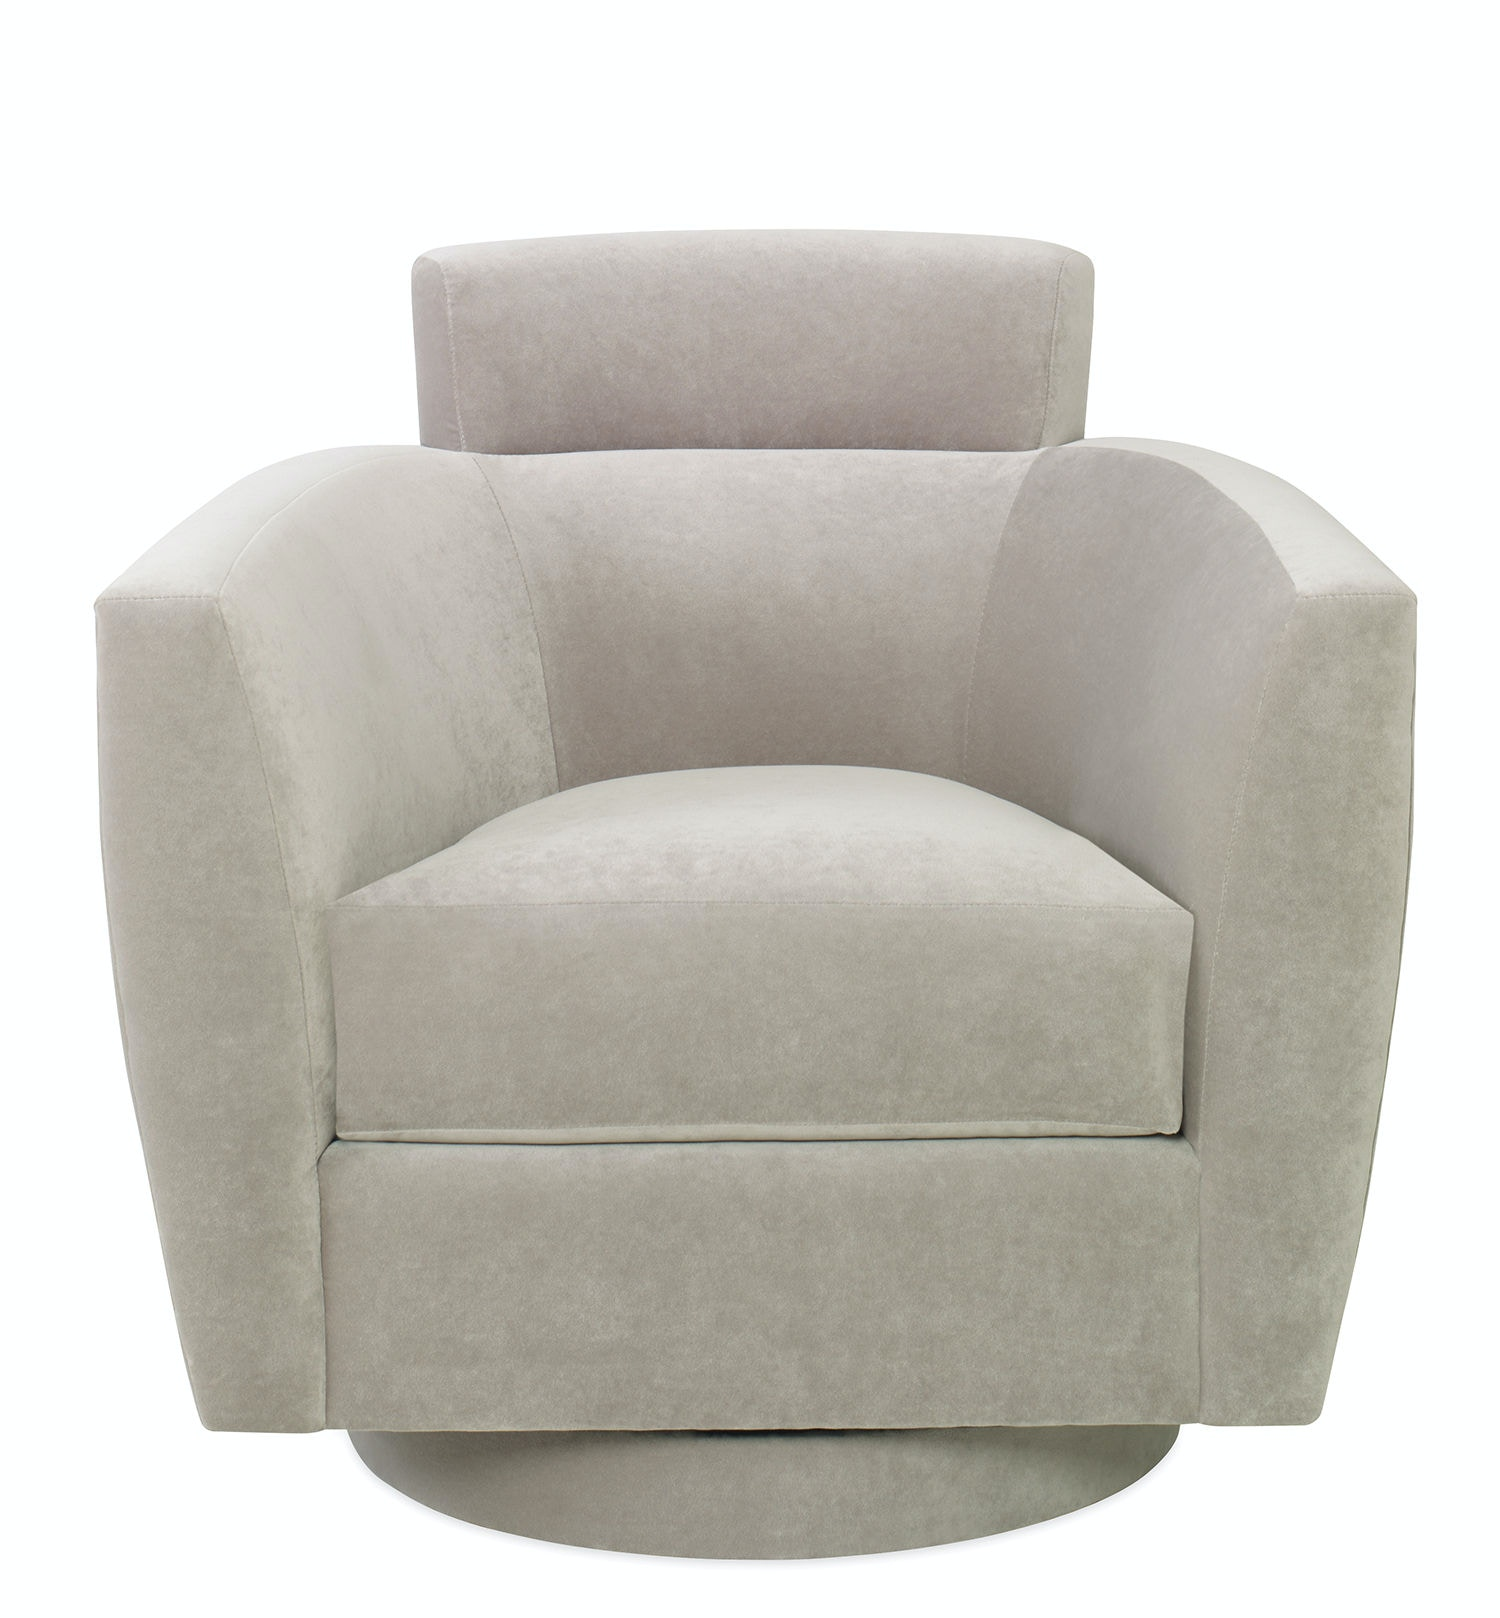 Kravet Smart Loyola Swivel Chair DL950 CH